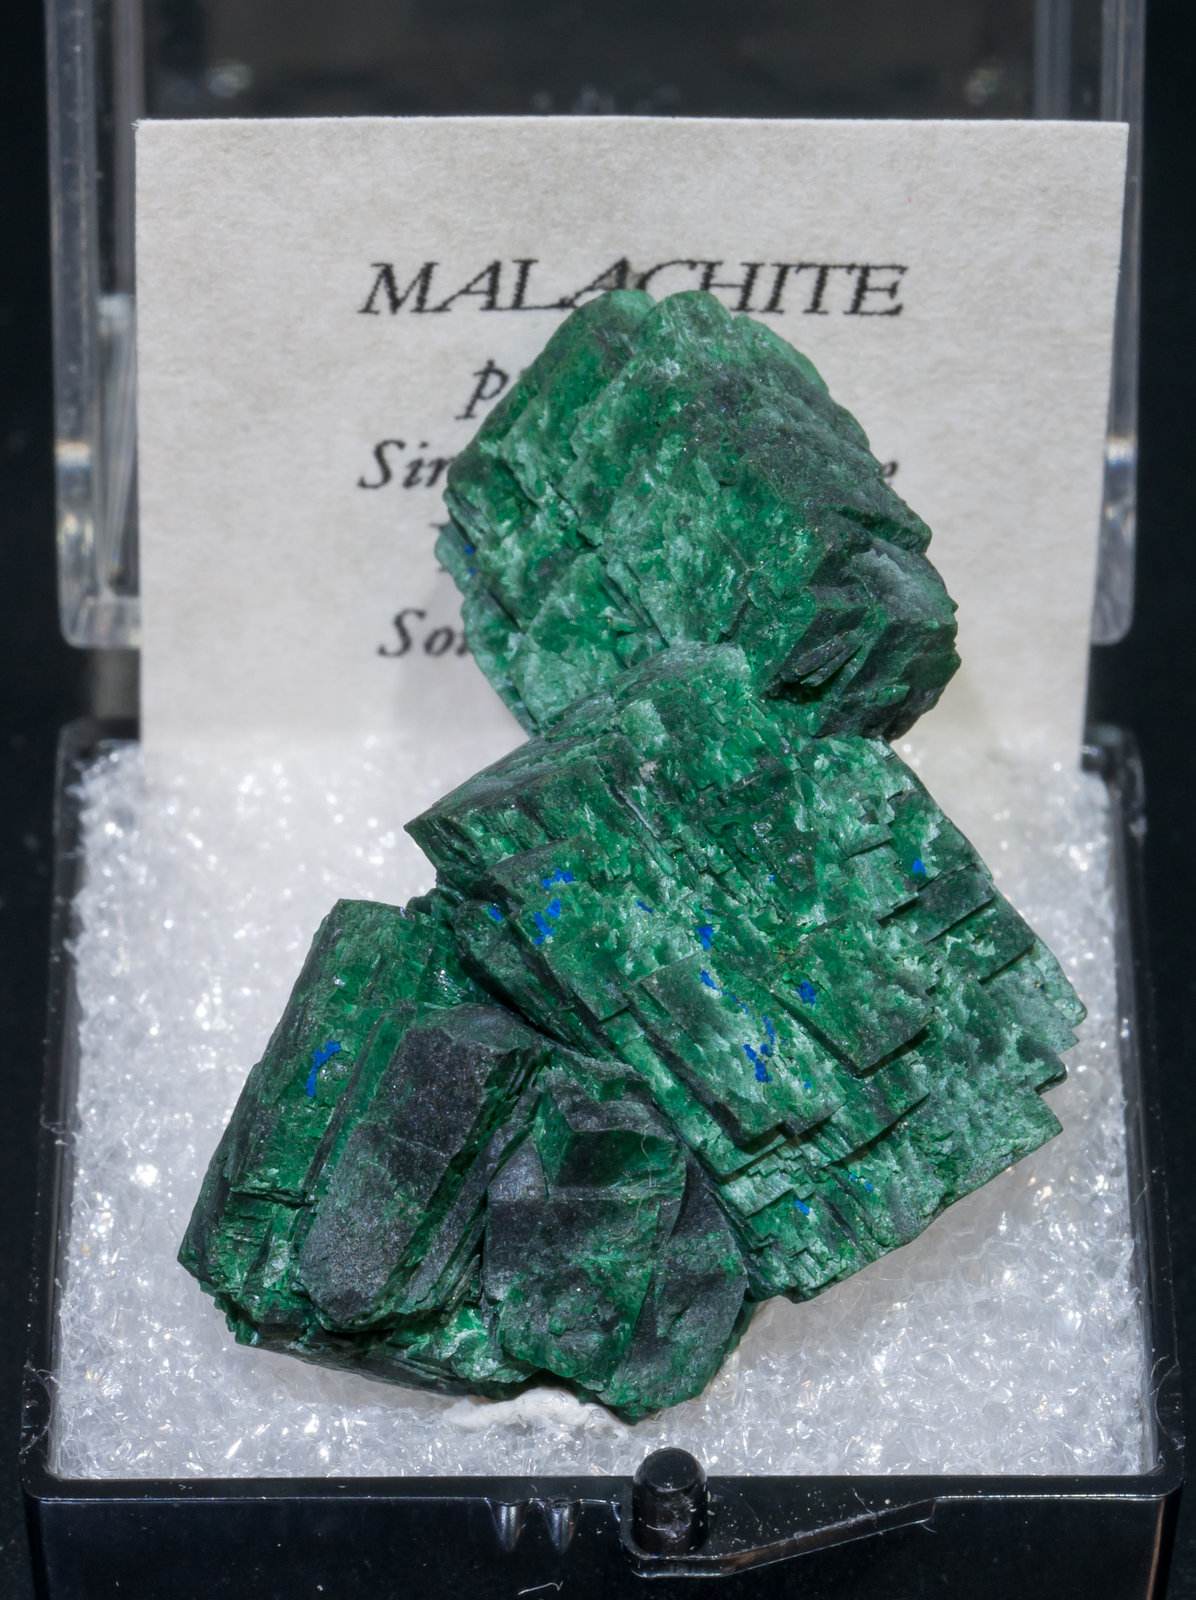 specimens/s_imagesAJ3/Malachite-TP68AJ3f1.jpg